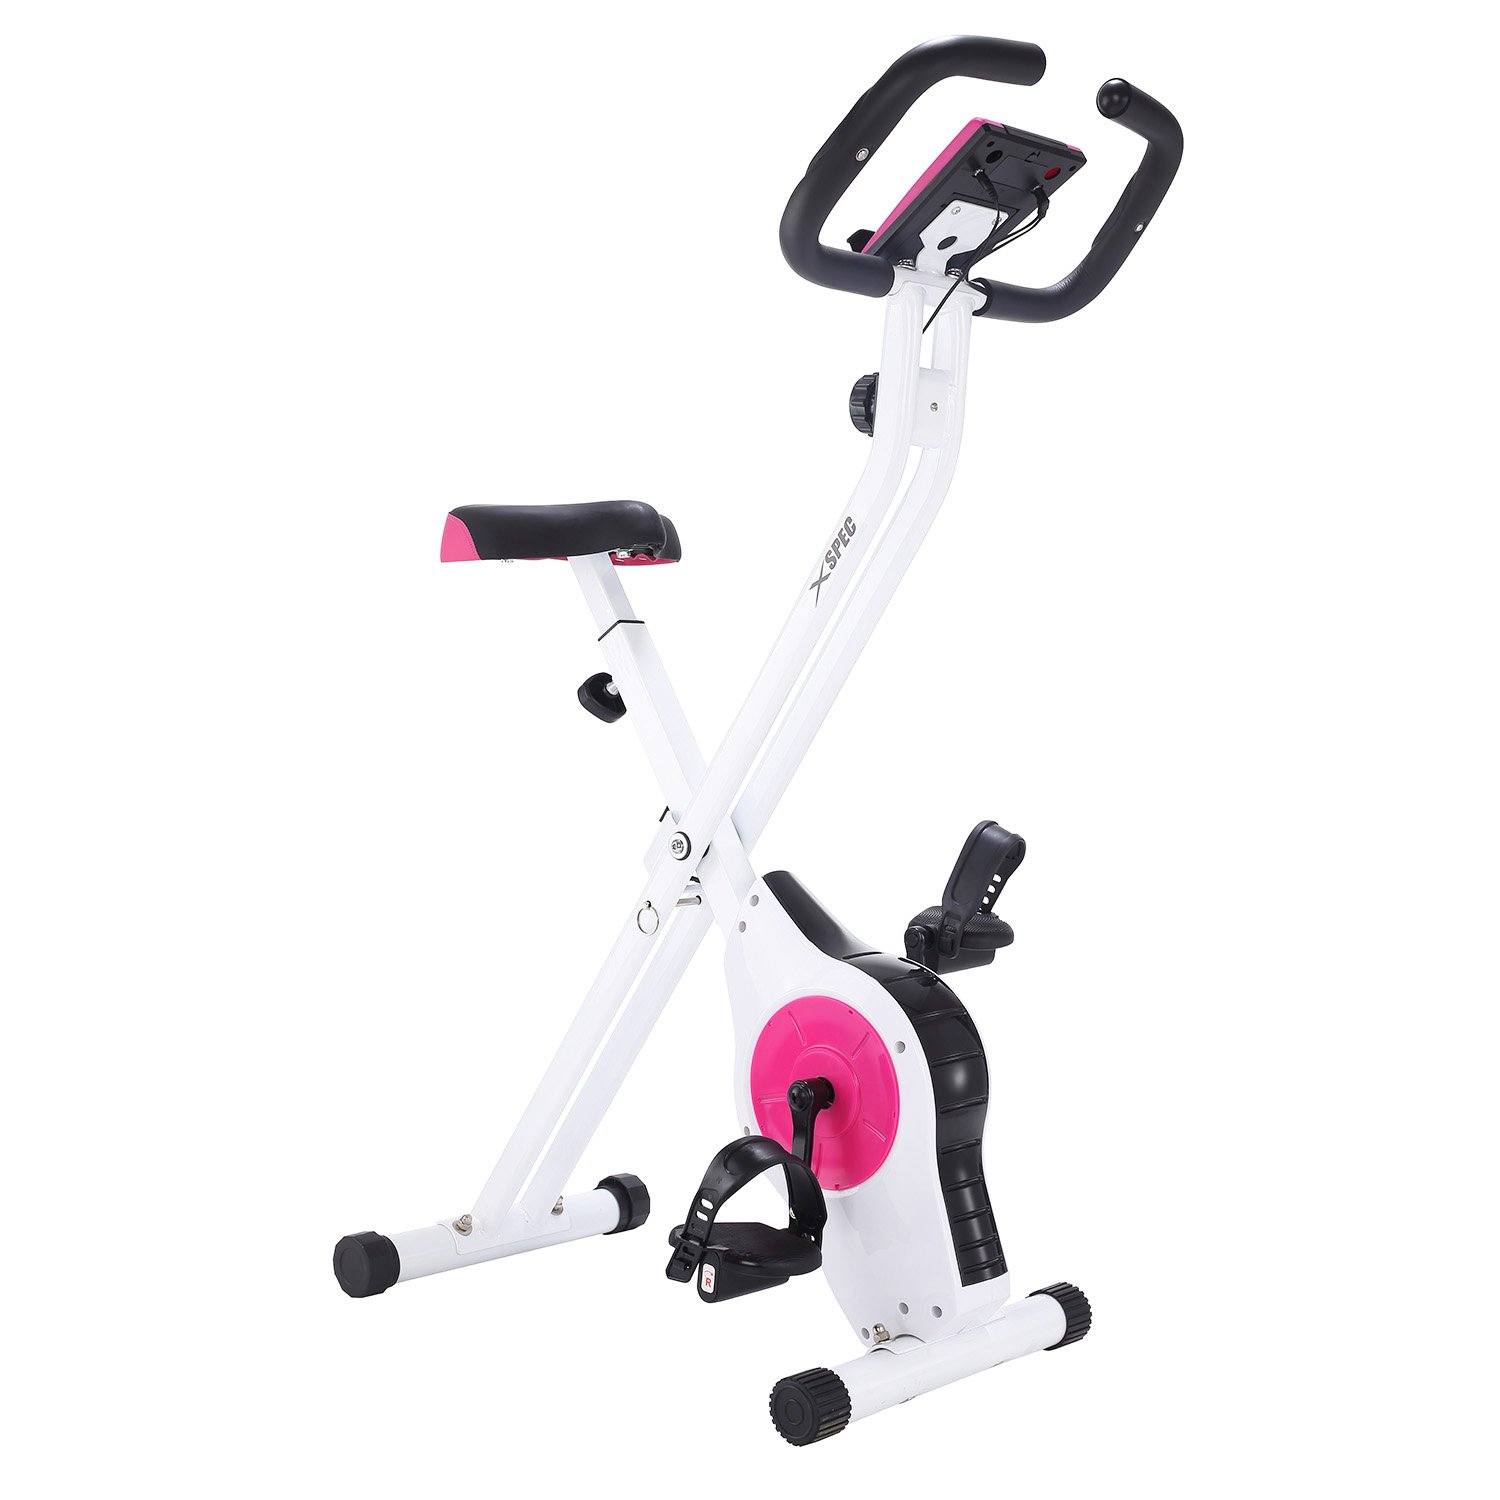 Xspec Foldable Stationary Upright Exercise Bike Magnetic Cardio Workout Indoor Cycling, Pink/White, Monitor with Phone/Tablet Holder, Heart Rate Pulse Sensor